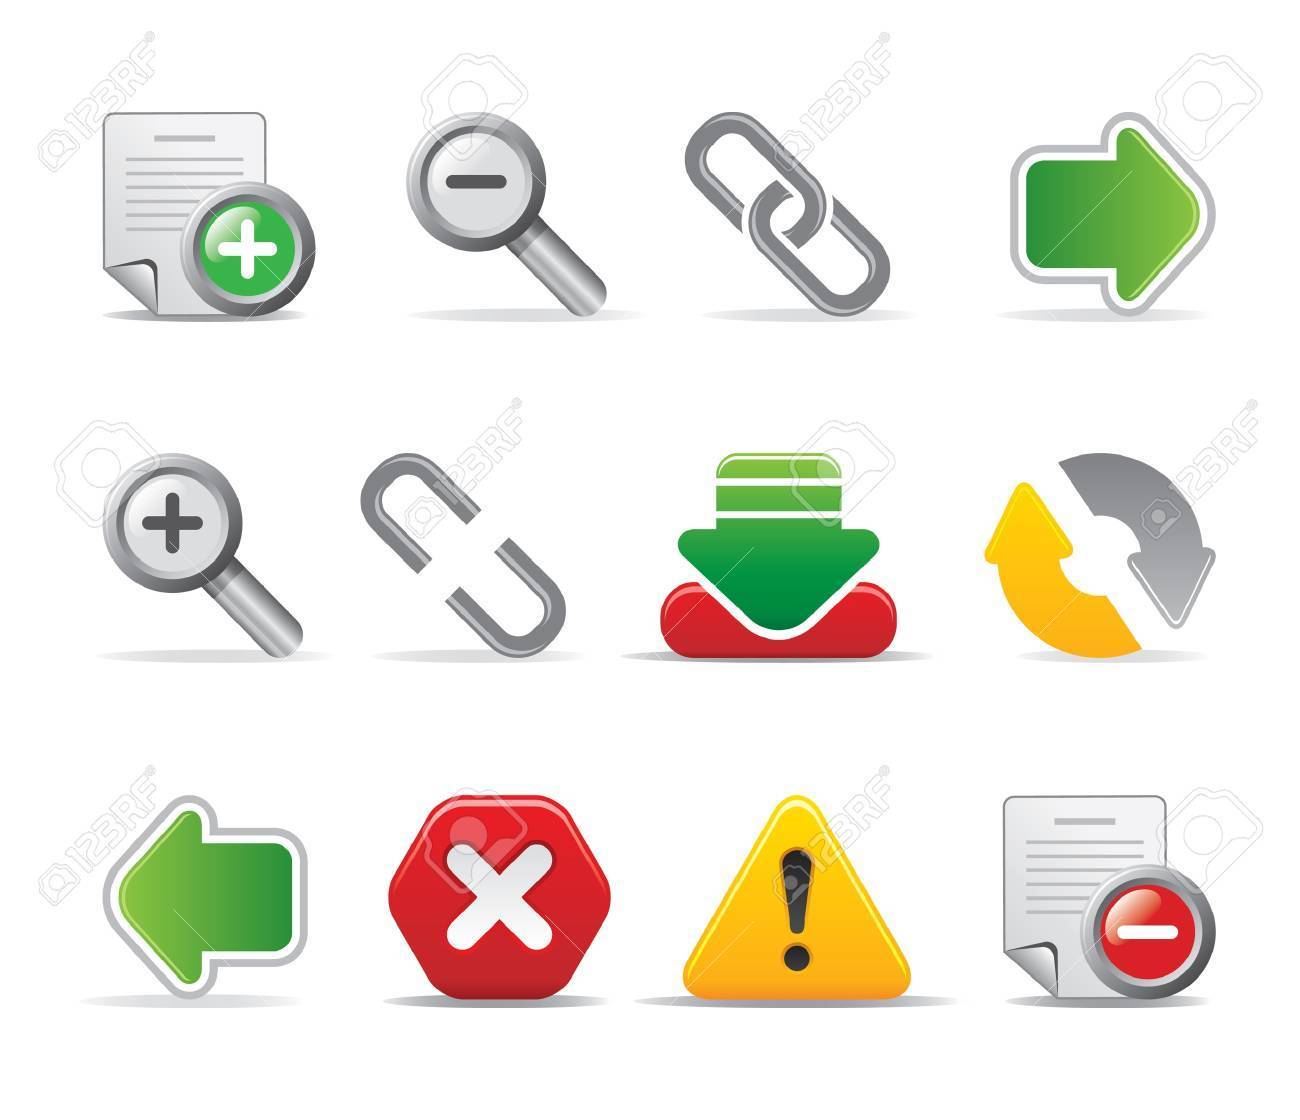 web page icons Stock Vector - 11206003